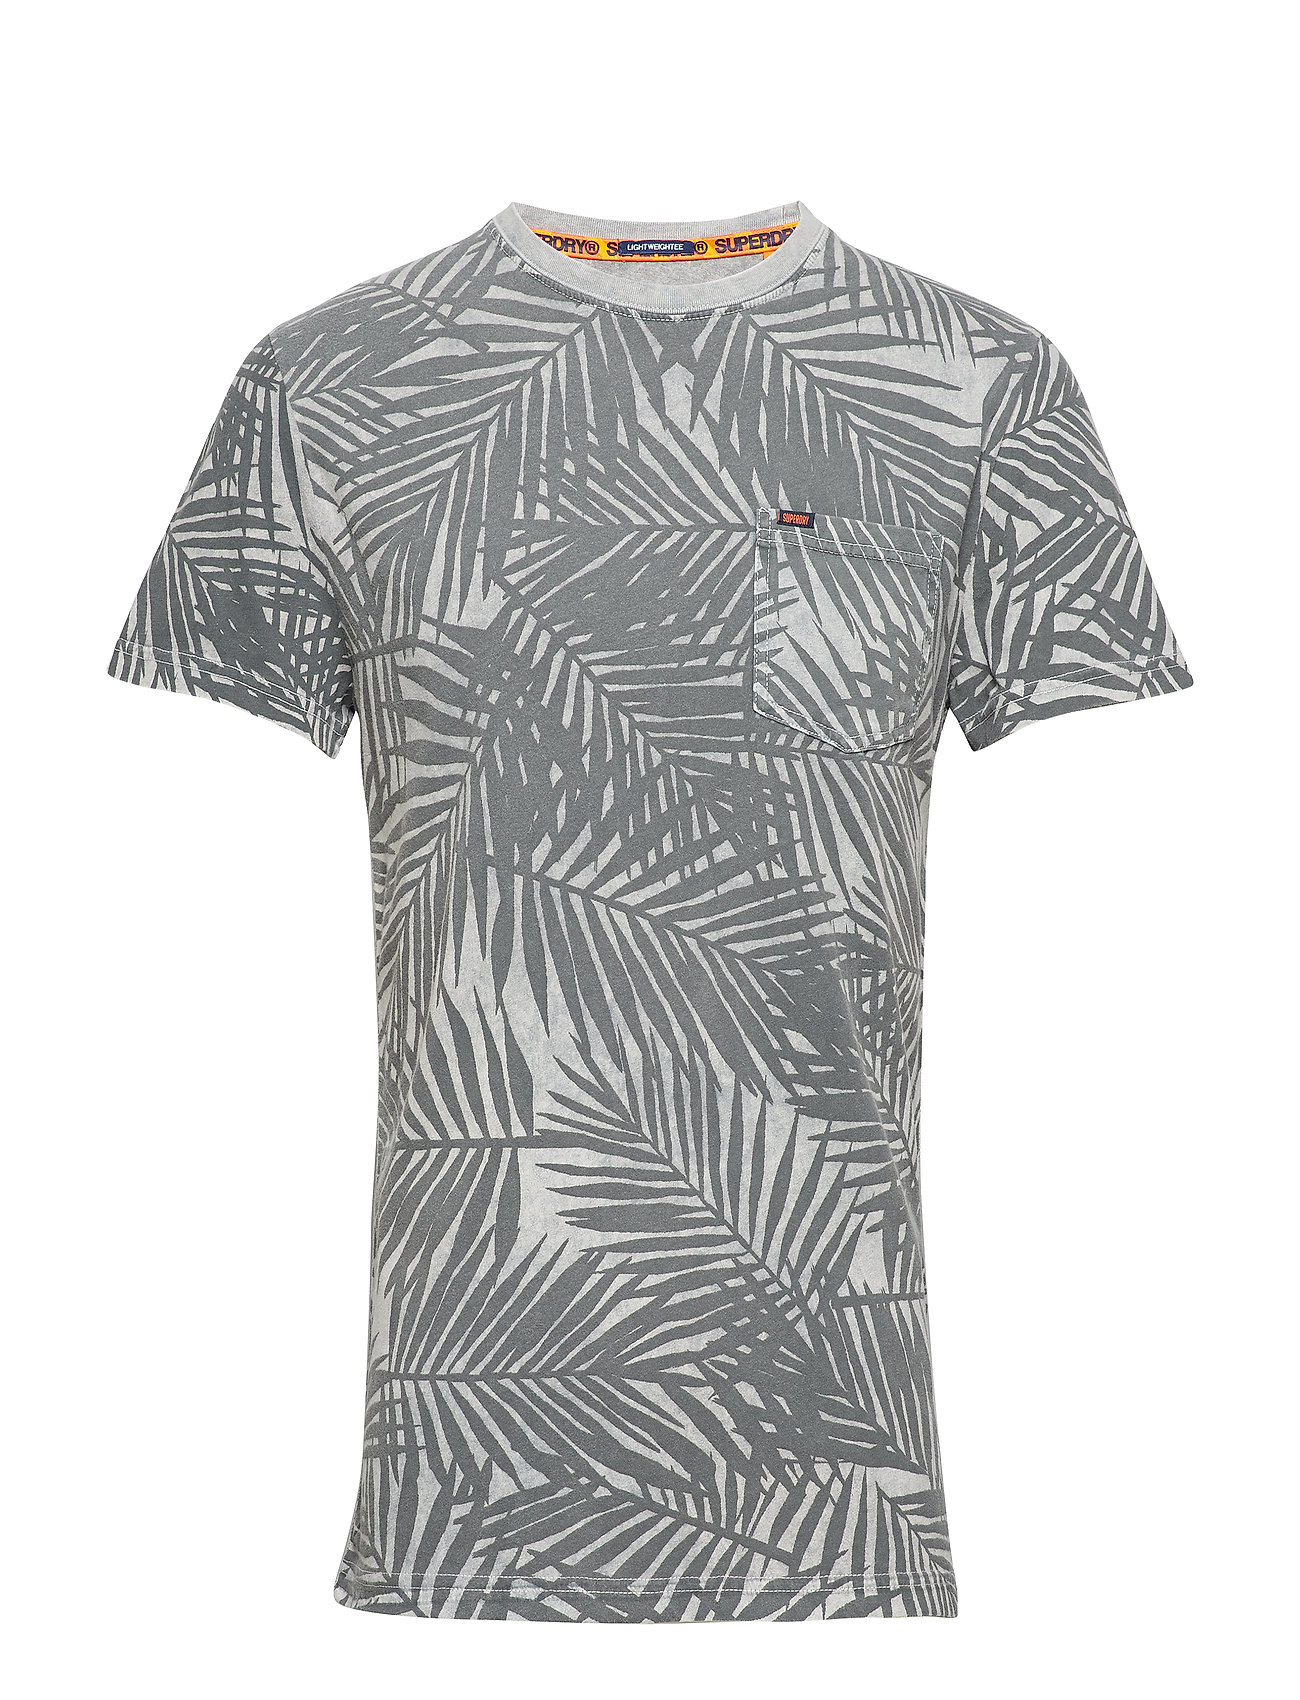 Superdry WHISTLER GEO TEE - WASHED GREY